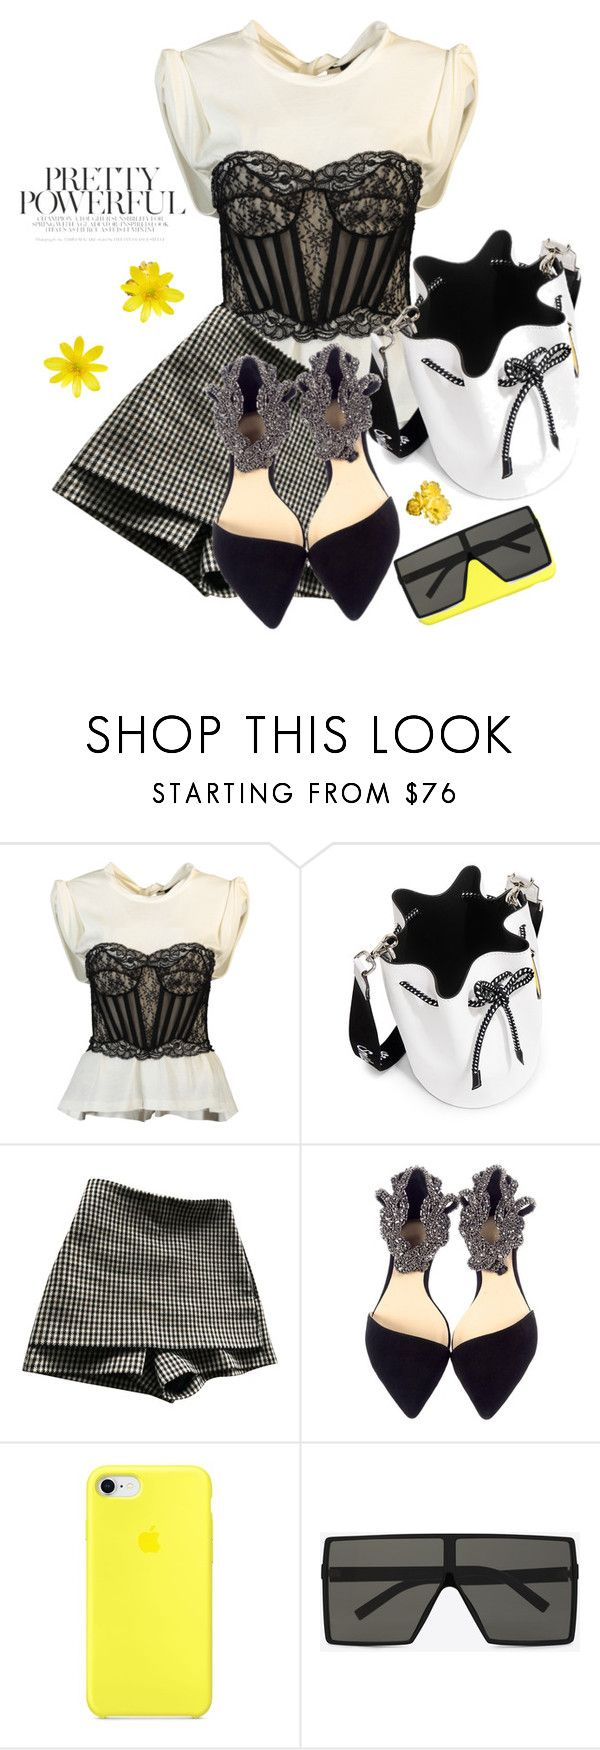 """I've got Sunshine ..."" by sue-mes ❤ liked on Polyvore featuring Alexander Wang, Joshua's, Maje and Yves Saint Laurent"